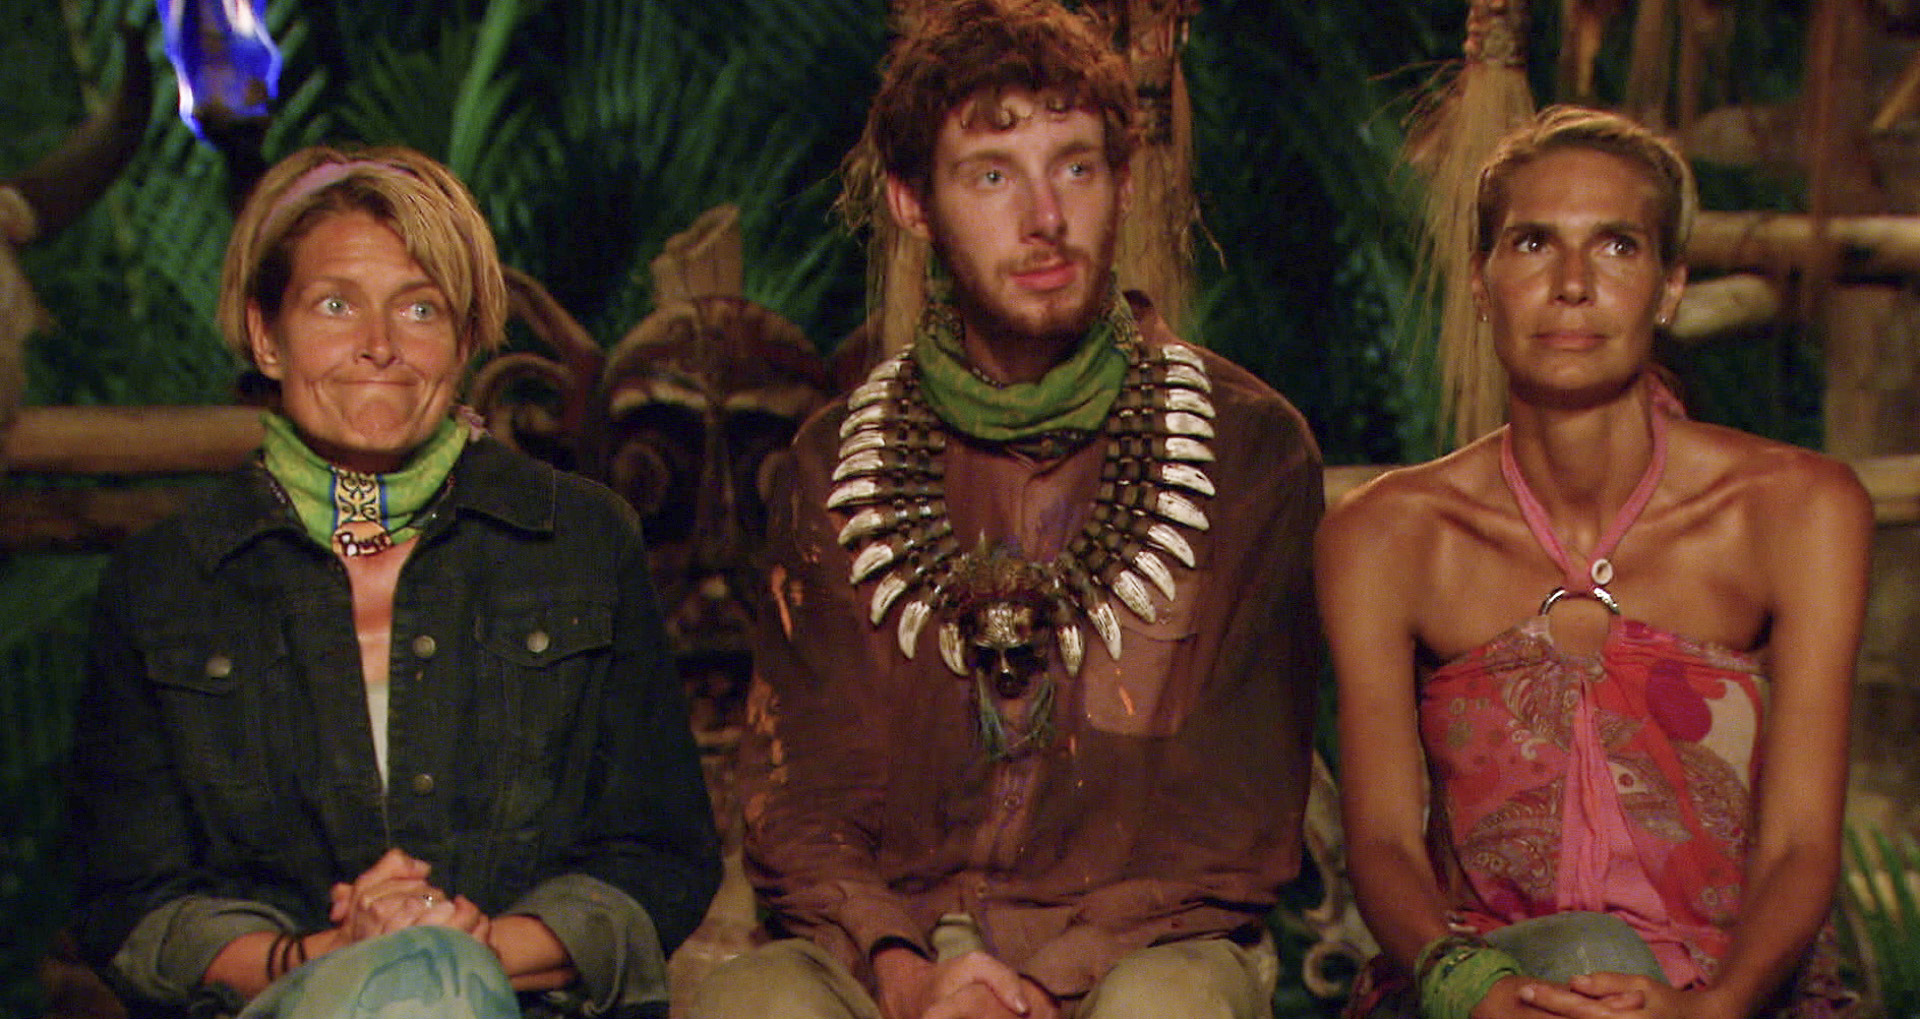 Final 3 at tribal council in the Season 26 Finale